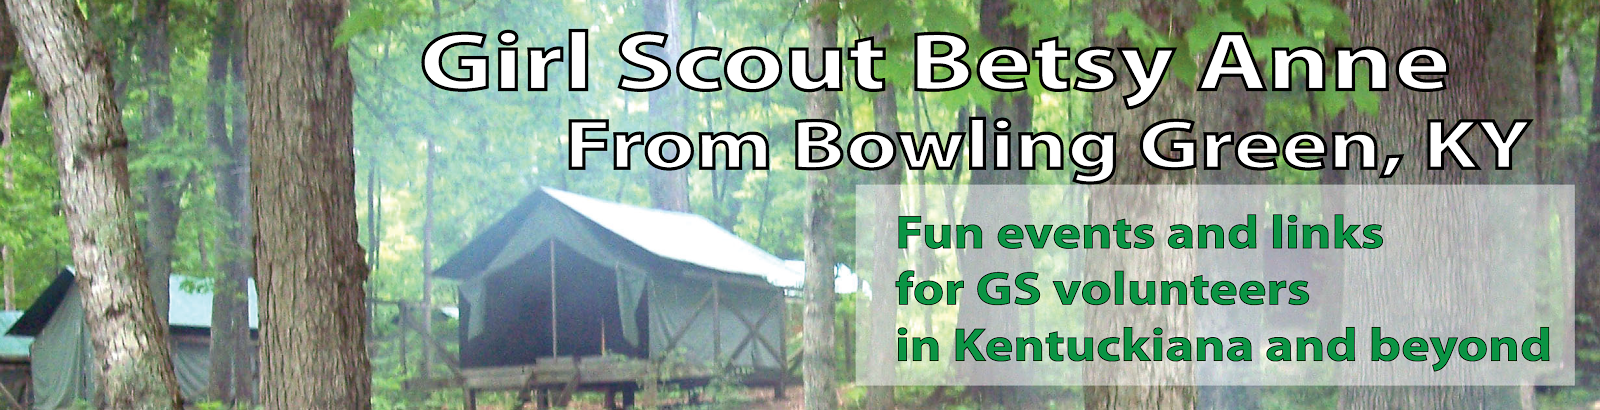 Girl Scout Betsy Anne from Bowling Green, KY